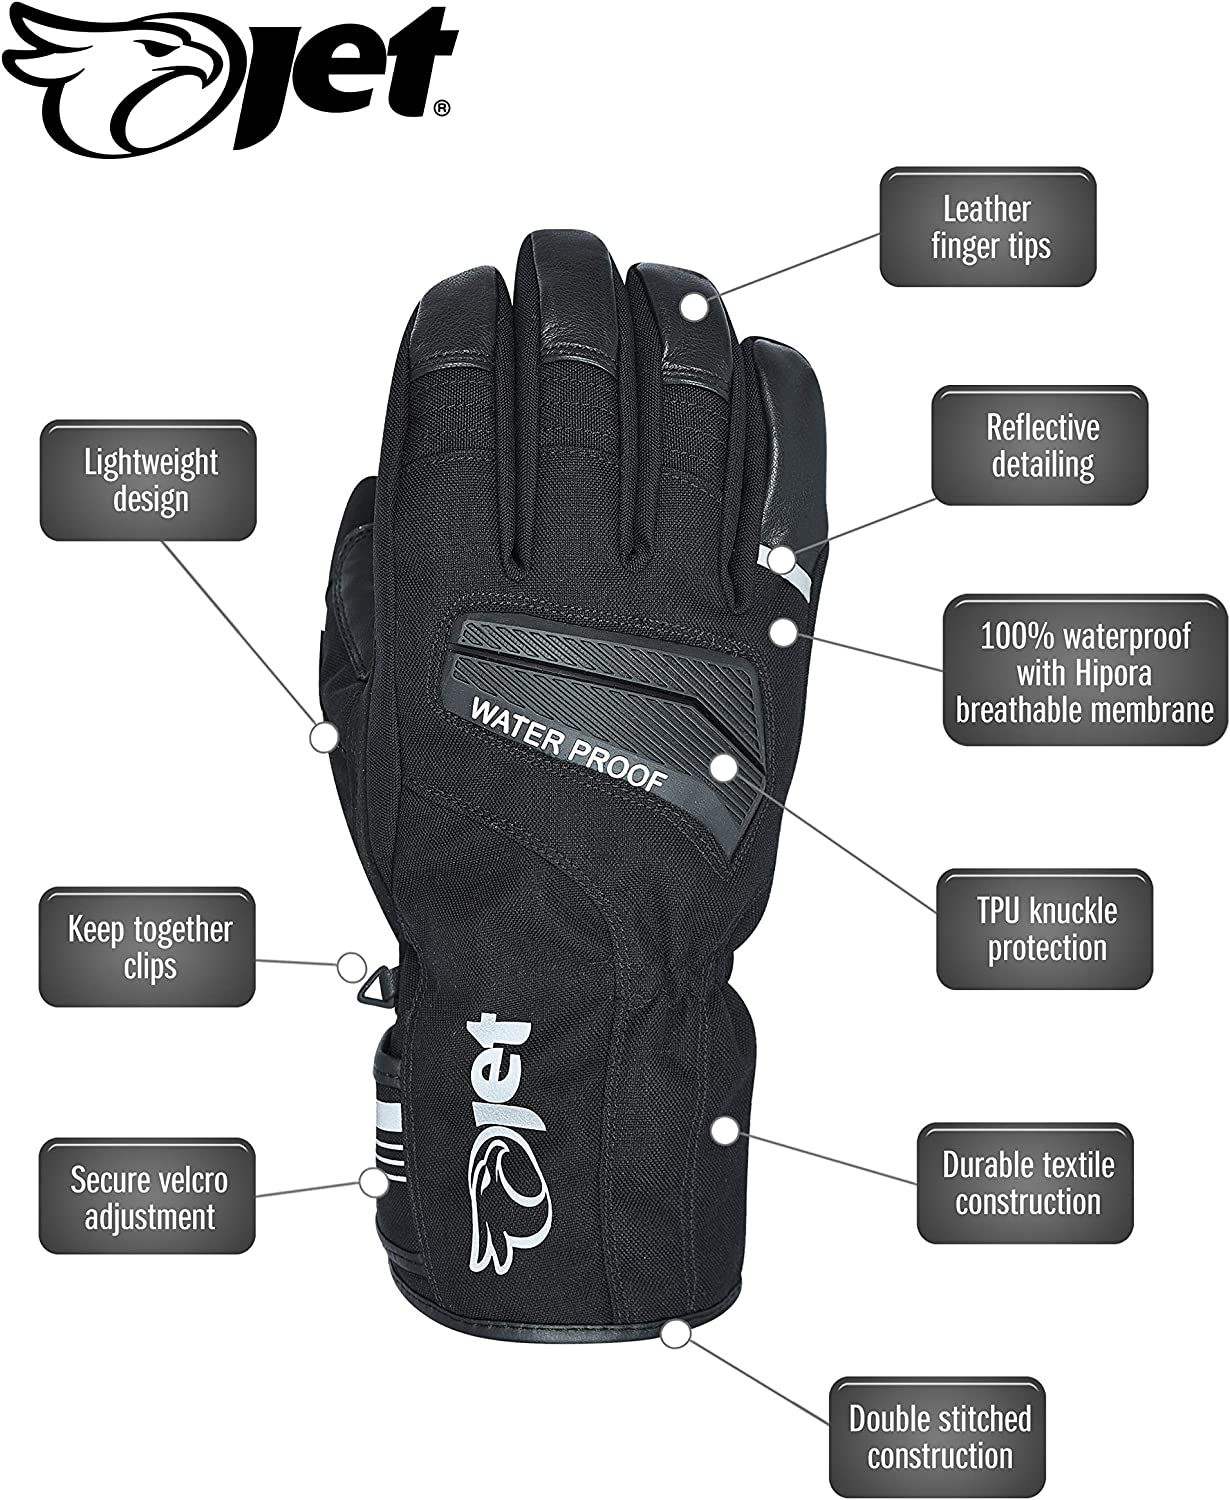 JET Motorcycle Motorbike Gloves Light Weight Waterproof Thermal Knuckle Protection Reflective Detailing AquaTex 2XL, Silver